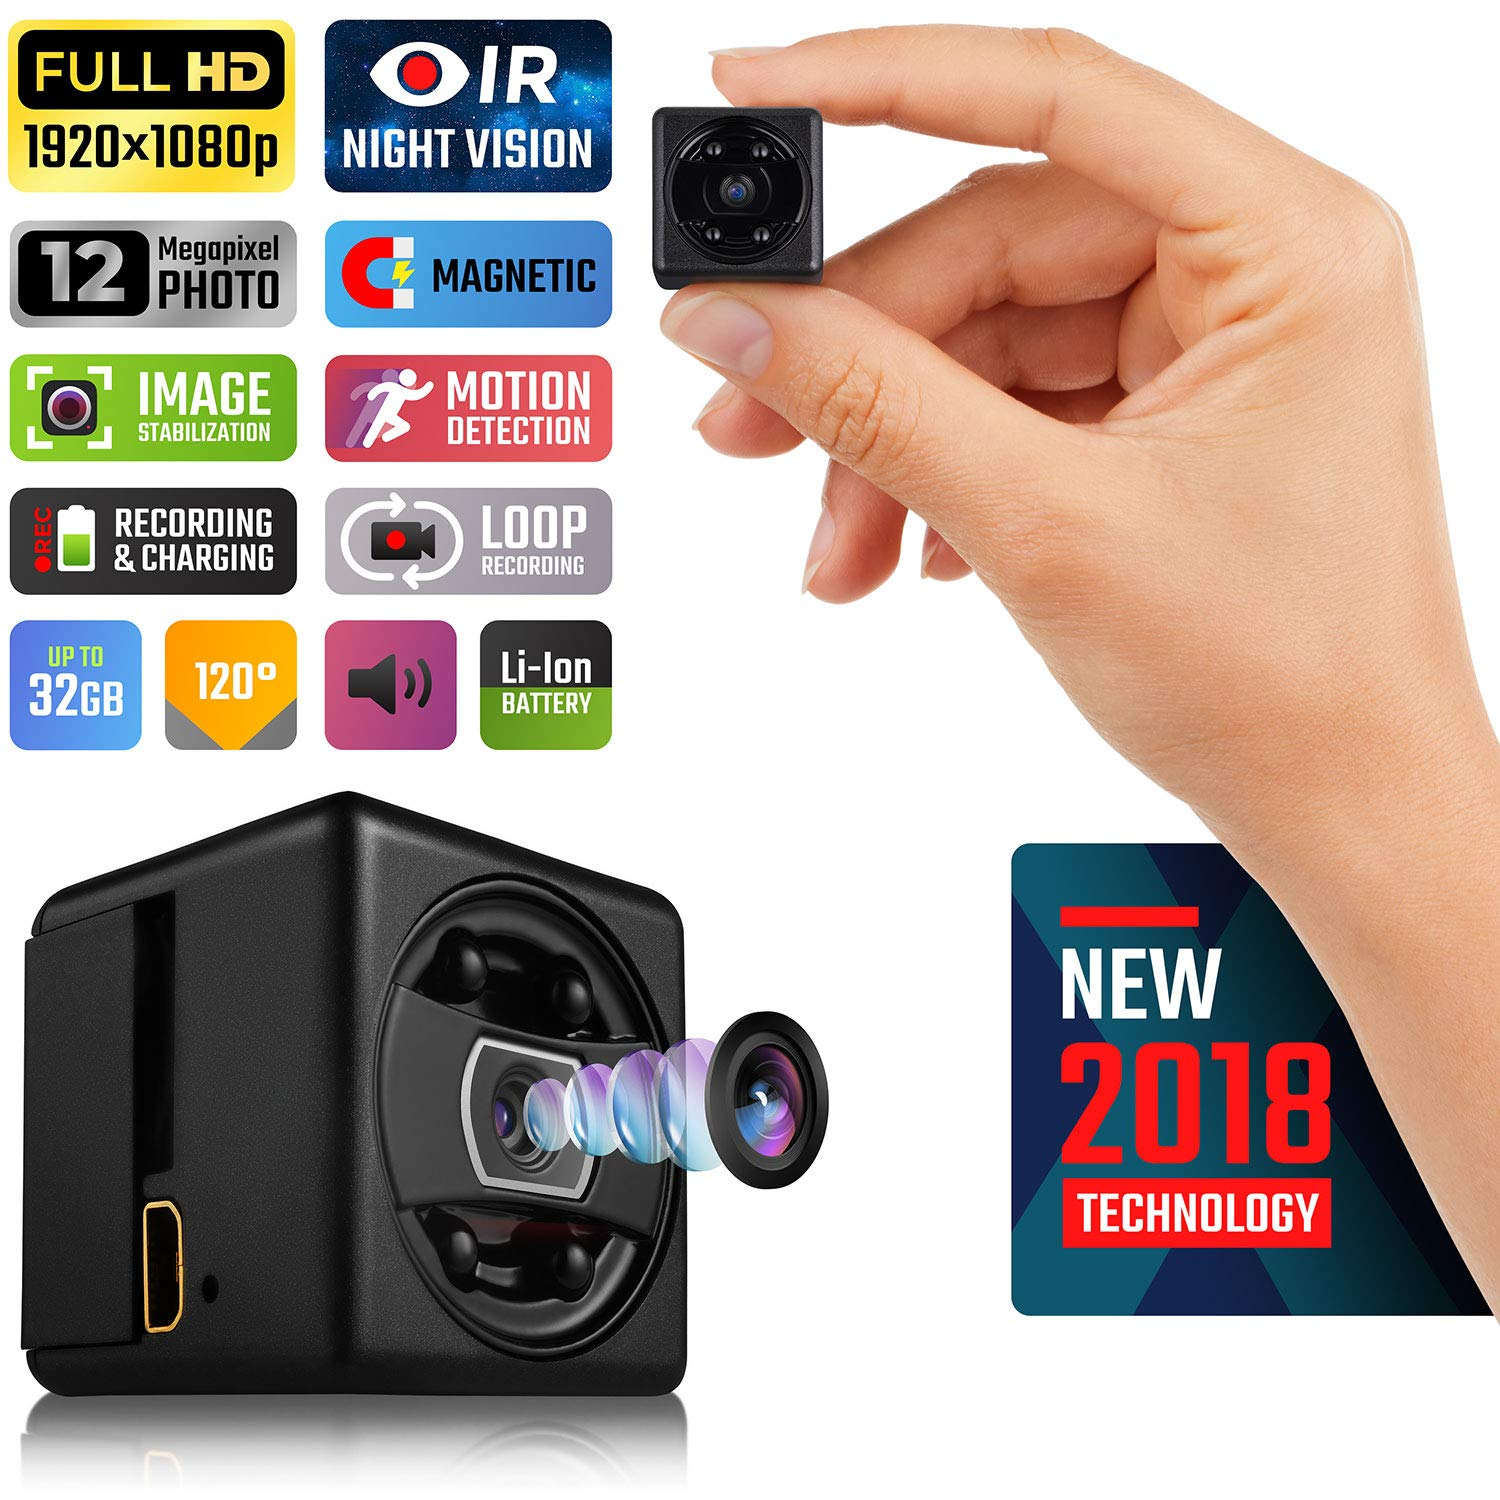 Lilexo Mini Hidden Spy Camera - HD Secret Camera - 1080P Small Magnetic Security Camera - Nanny Cam With Night Vision and Motion Detection - Indoor/Outdoor Surveillance Camera for Home, Car, Office by Lilexo